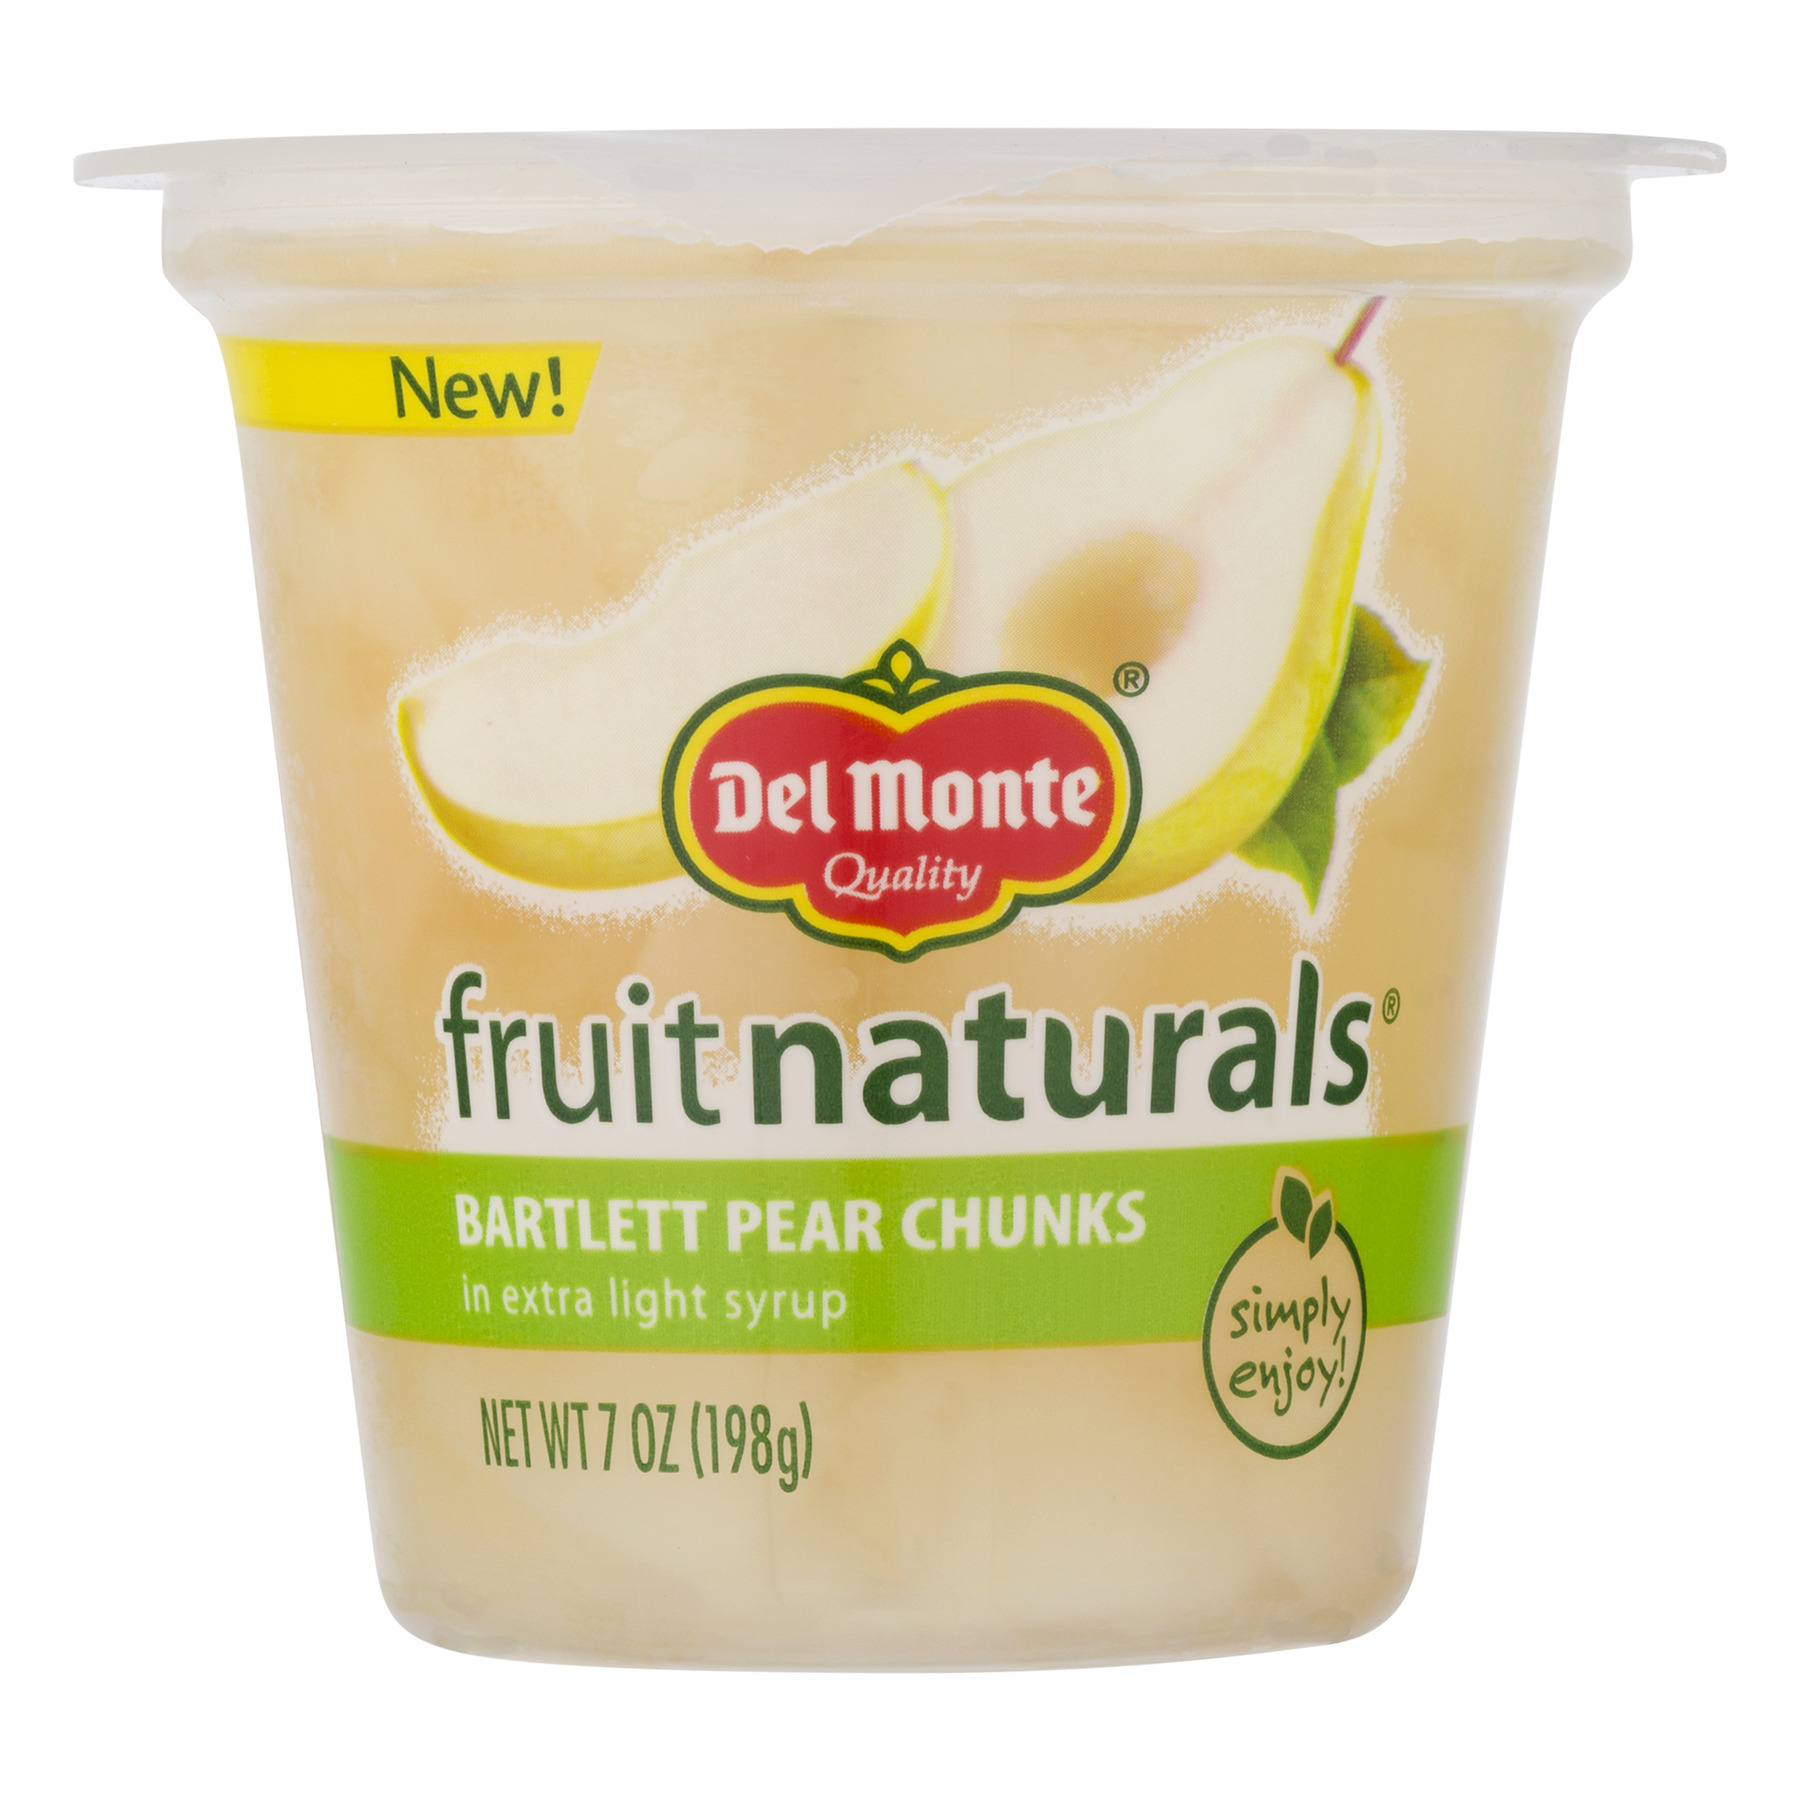 Del Monte Fruit Naturals Bartlett Pear Chunks in Extra Light Syrup 7 oz. Cup